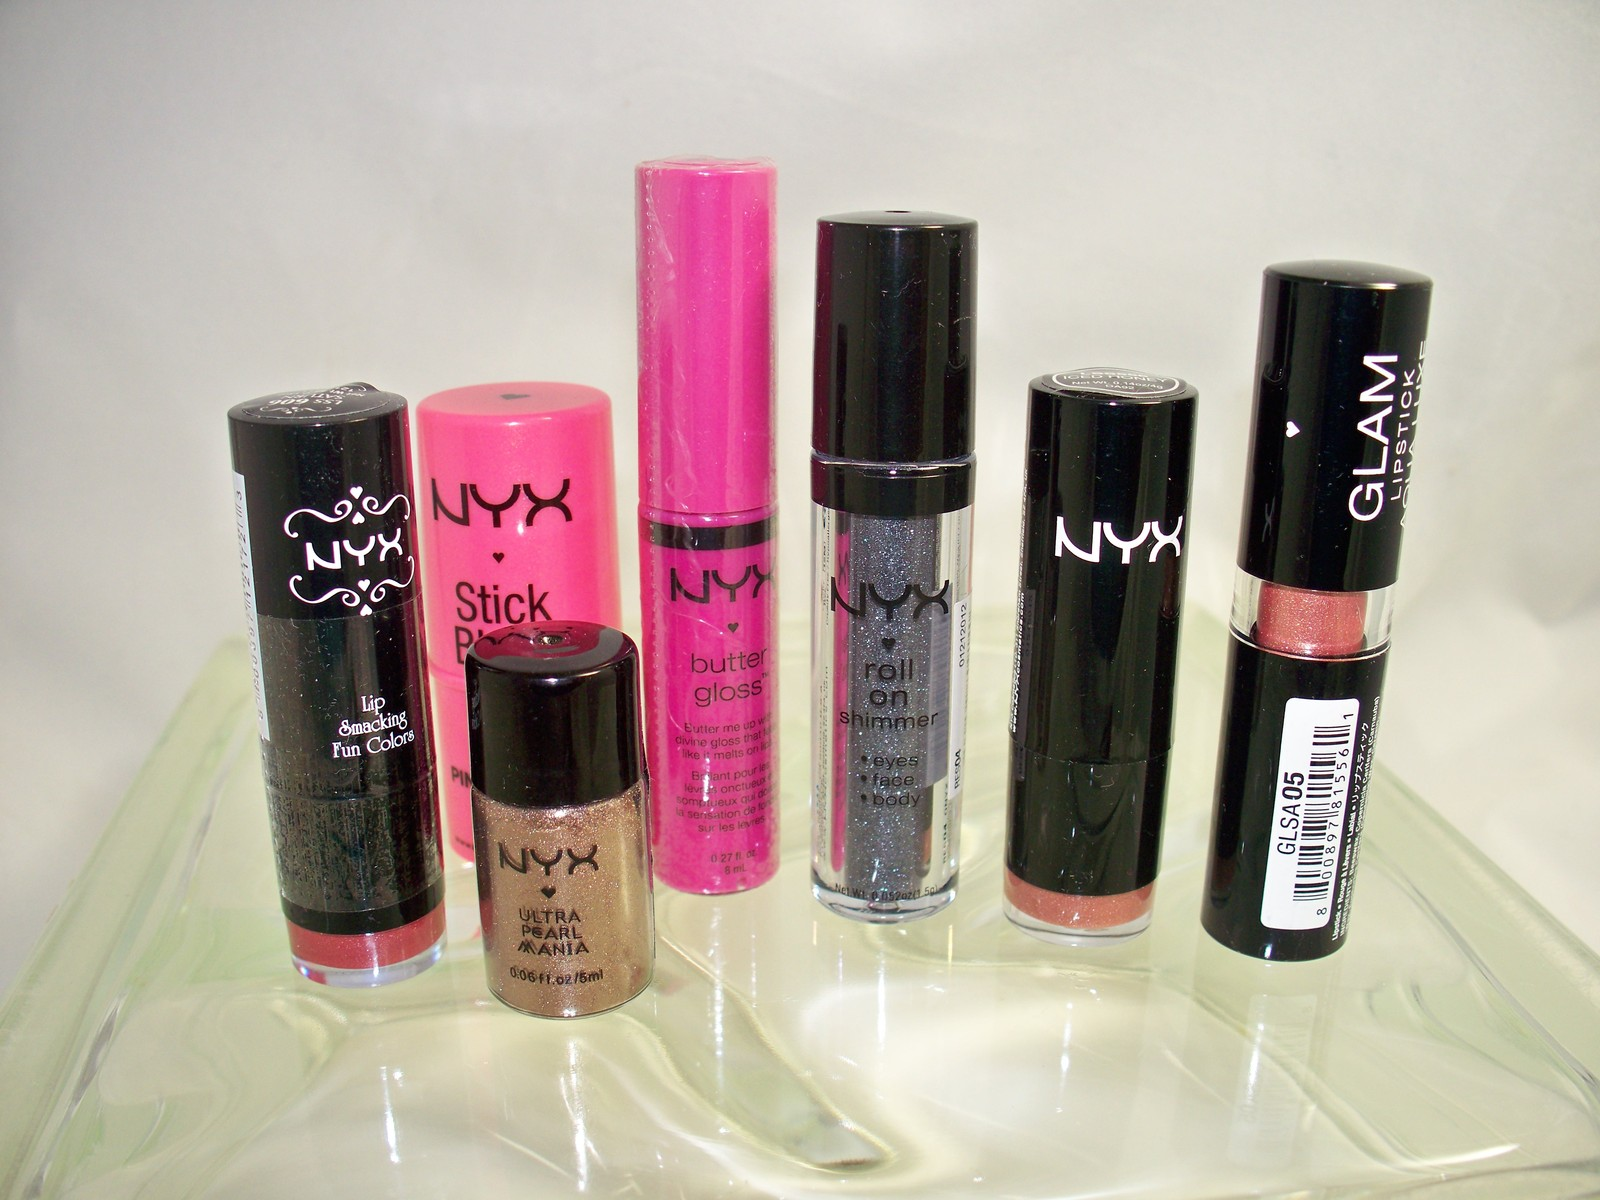 Primary image for Nyx 8 piece set for lips, eyes & cheeks includes Liquid Suede for lips